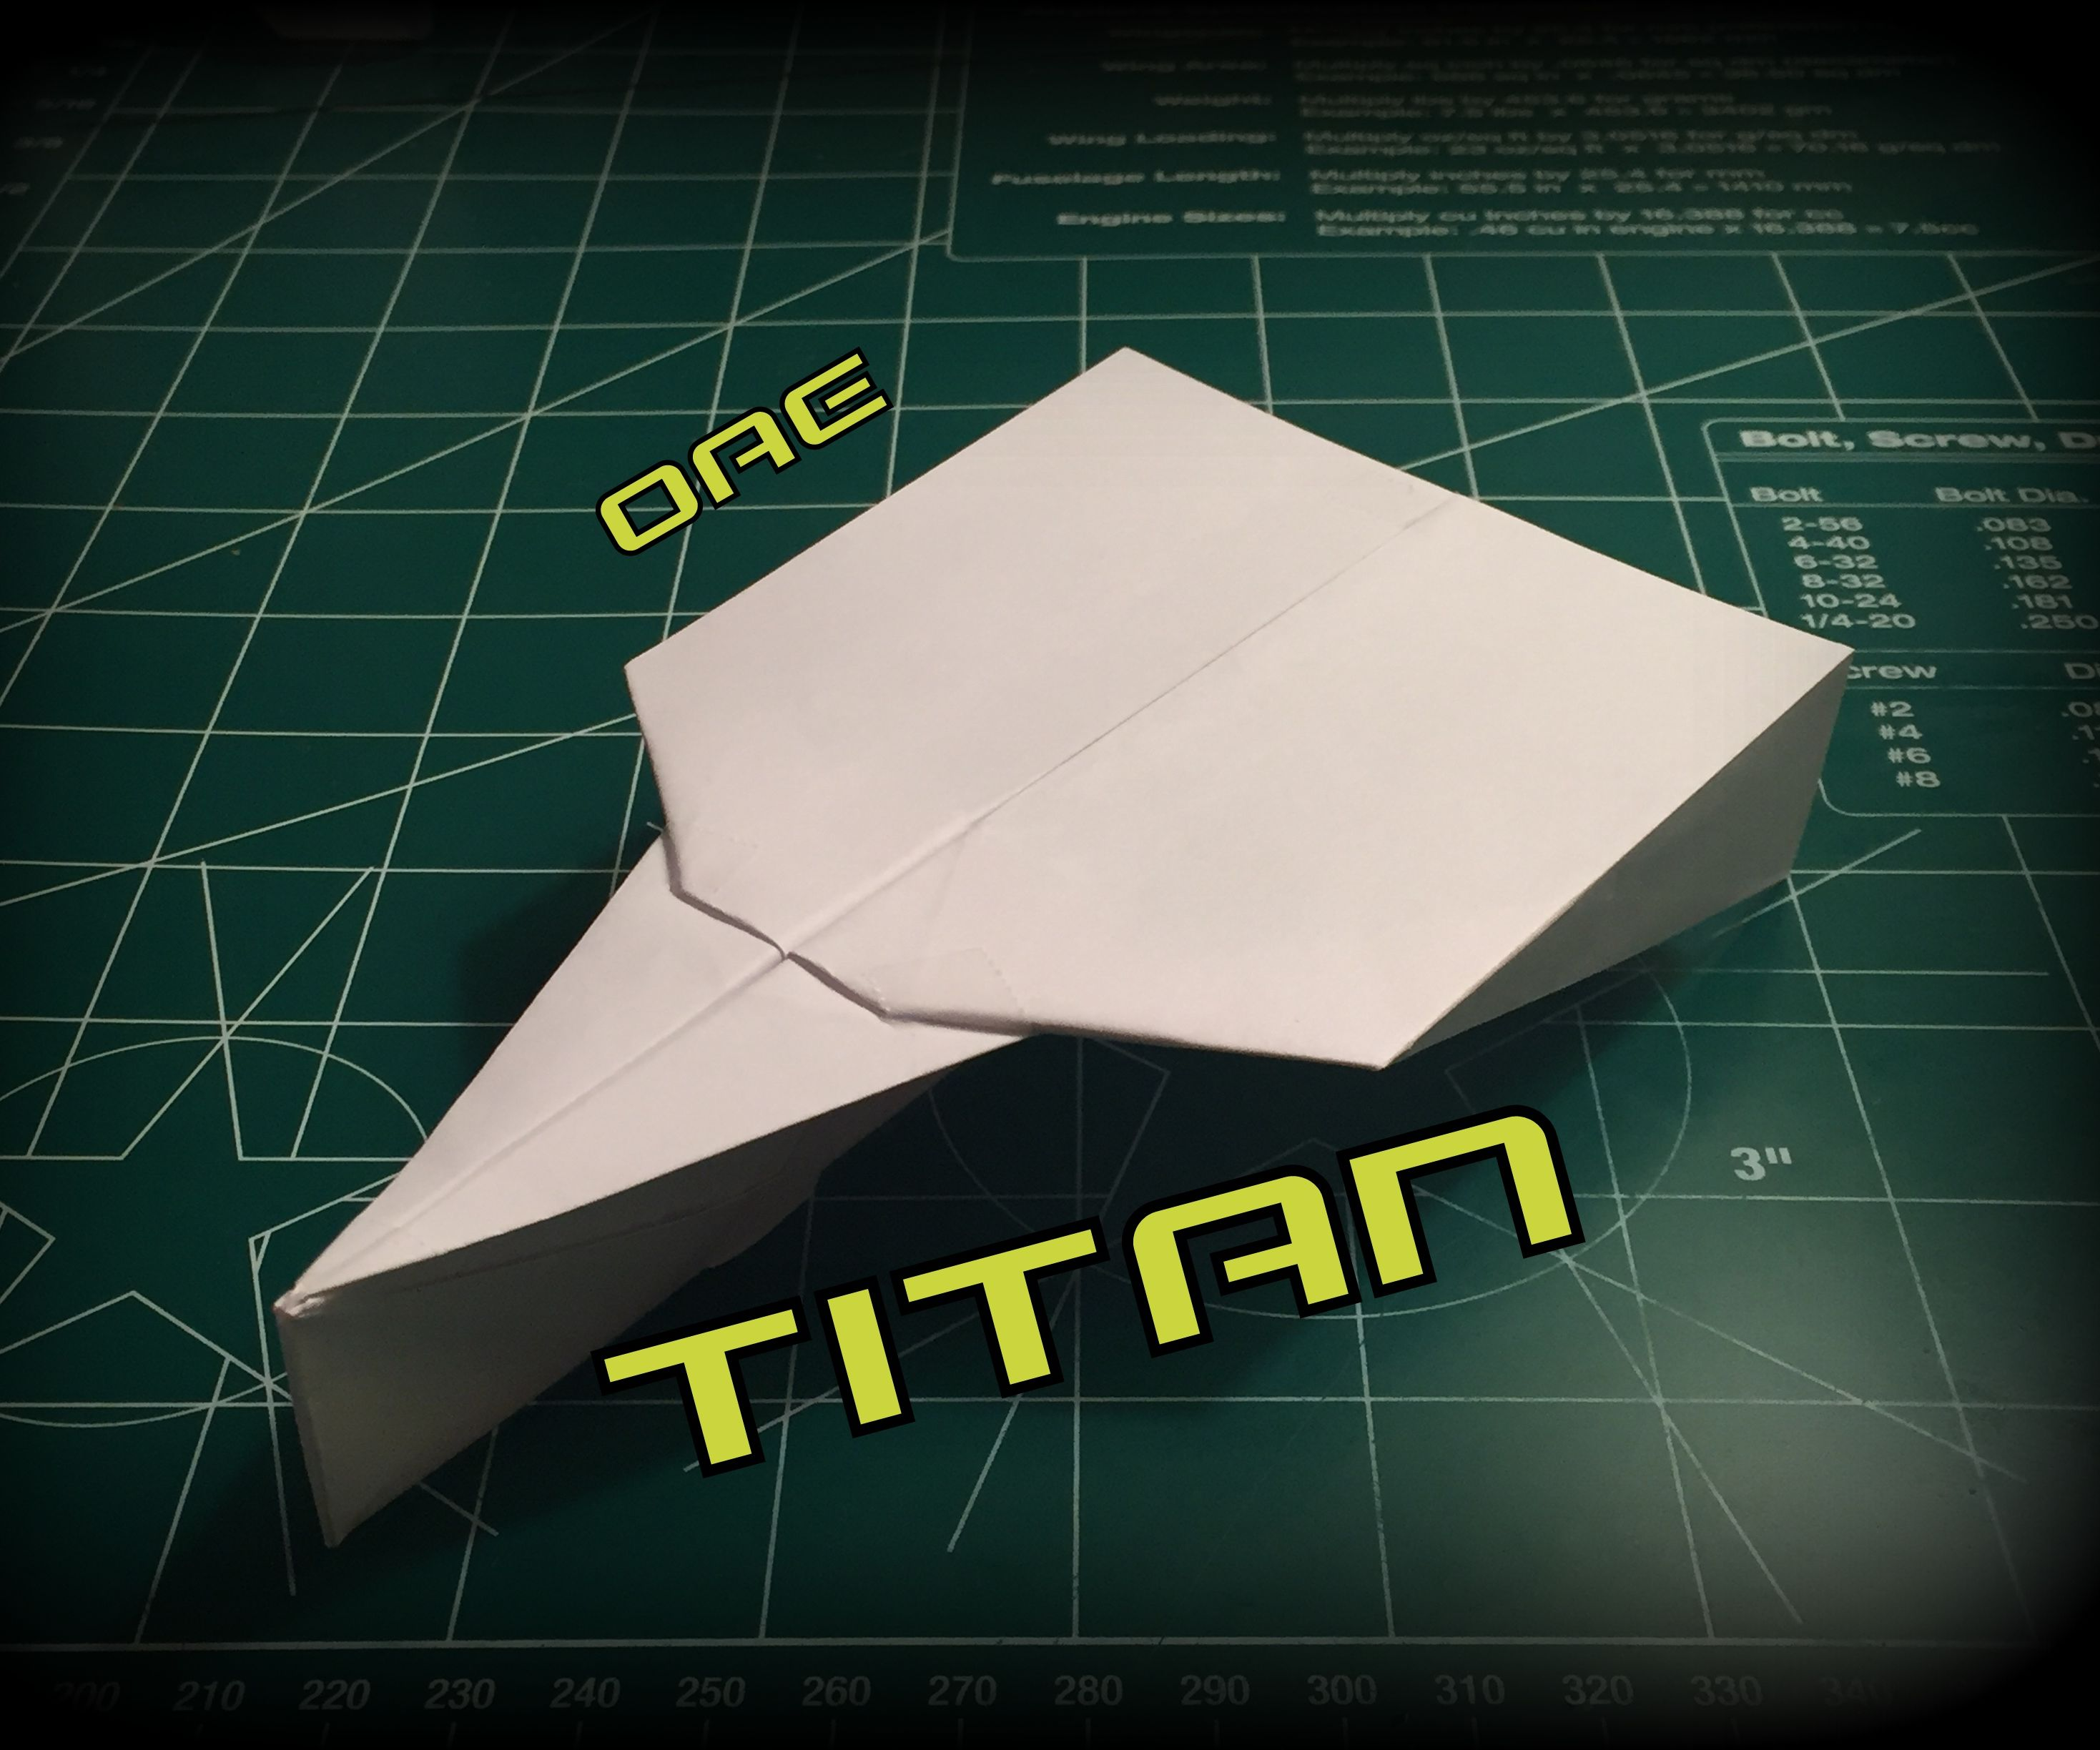 How to Make the Titan Paper Airplane